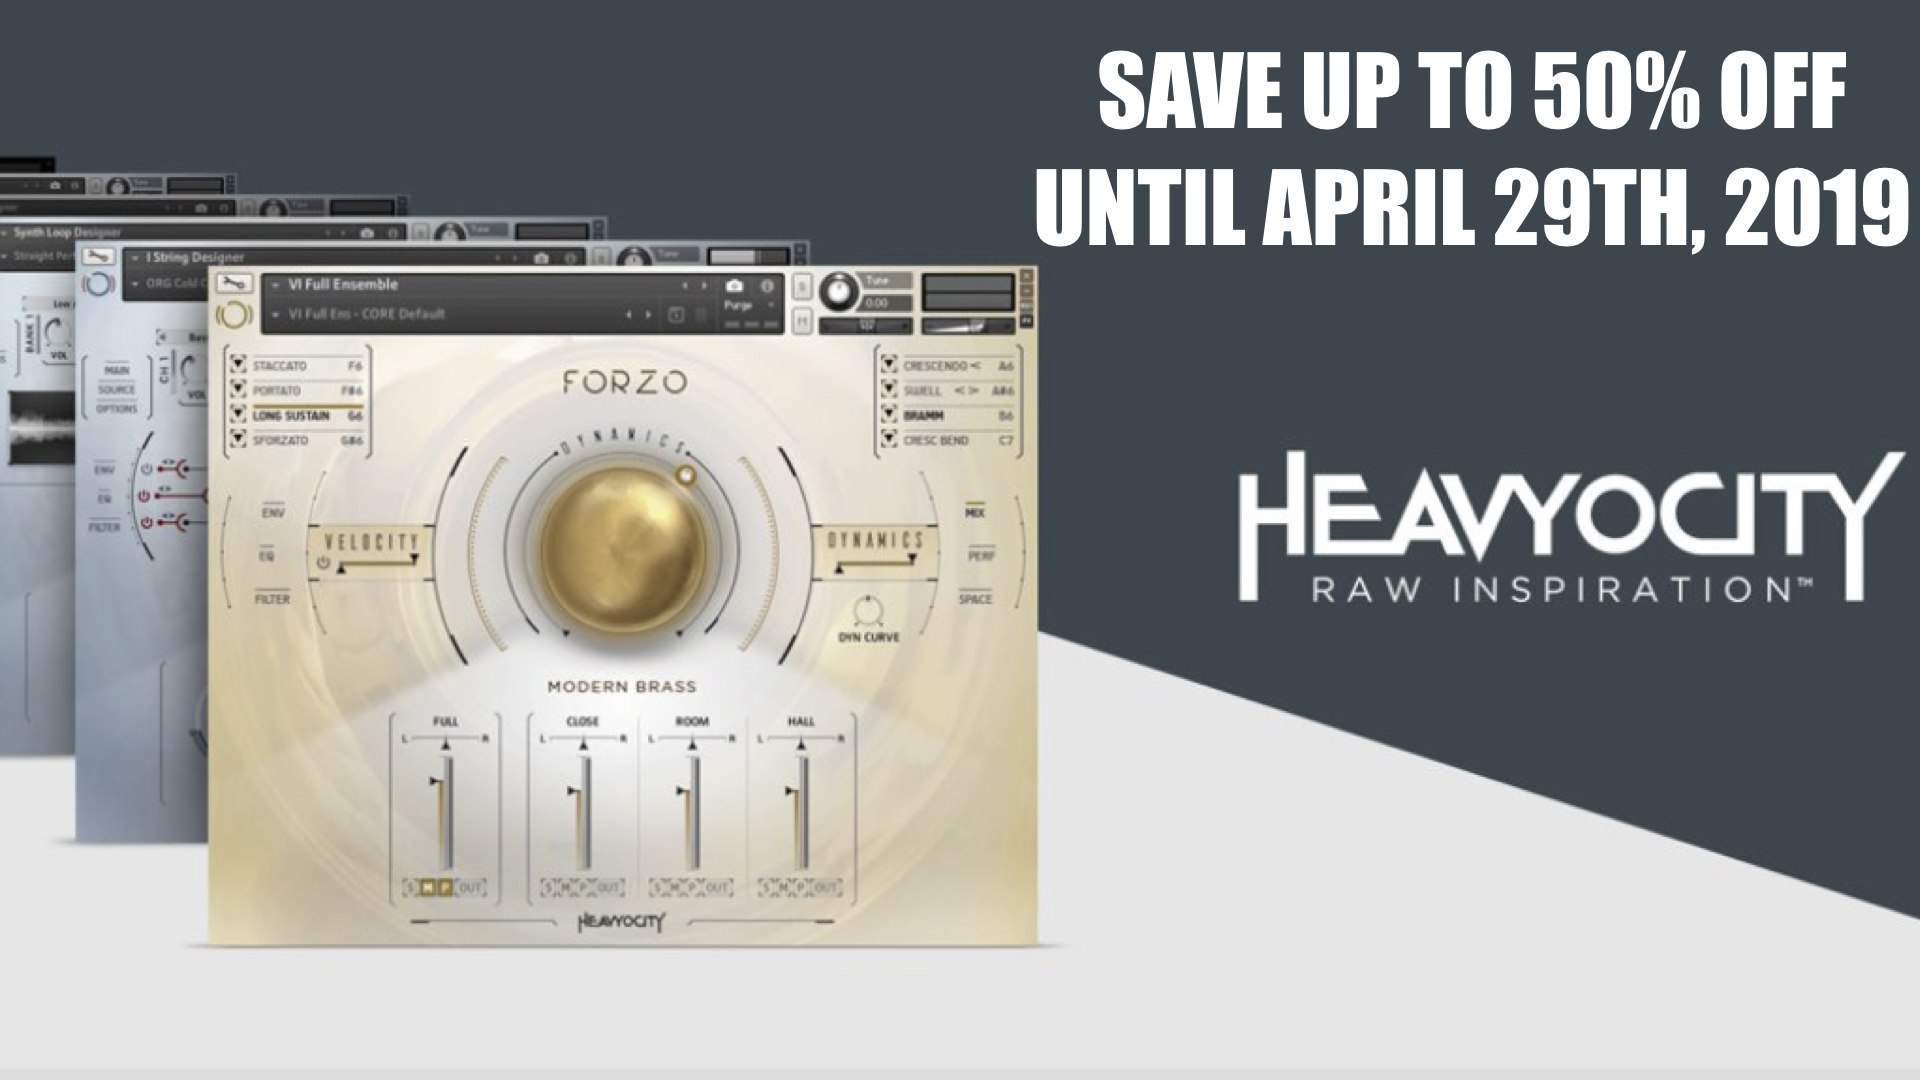 Heavyocity Sale